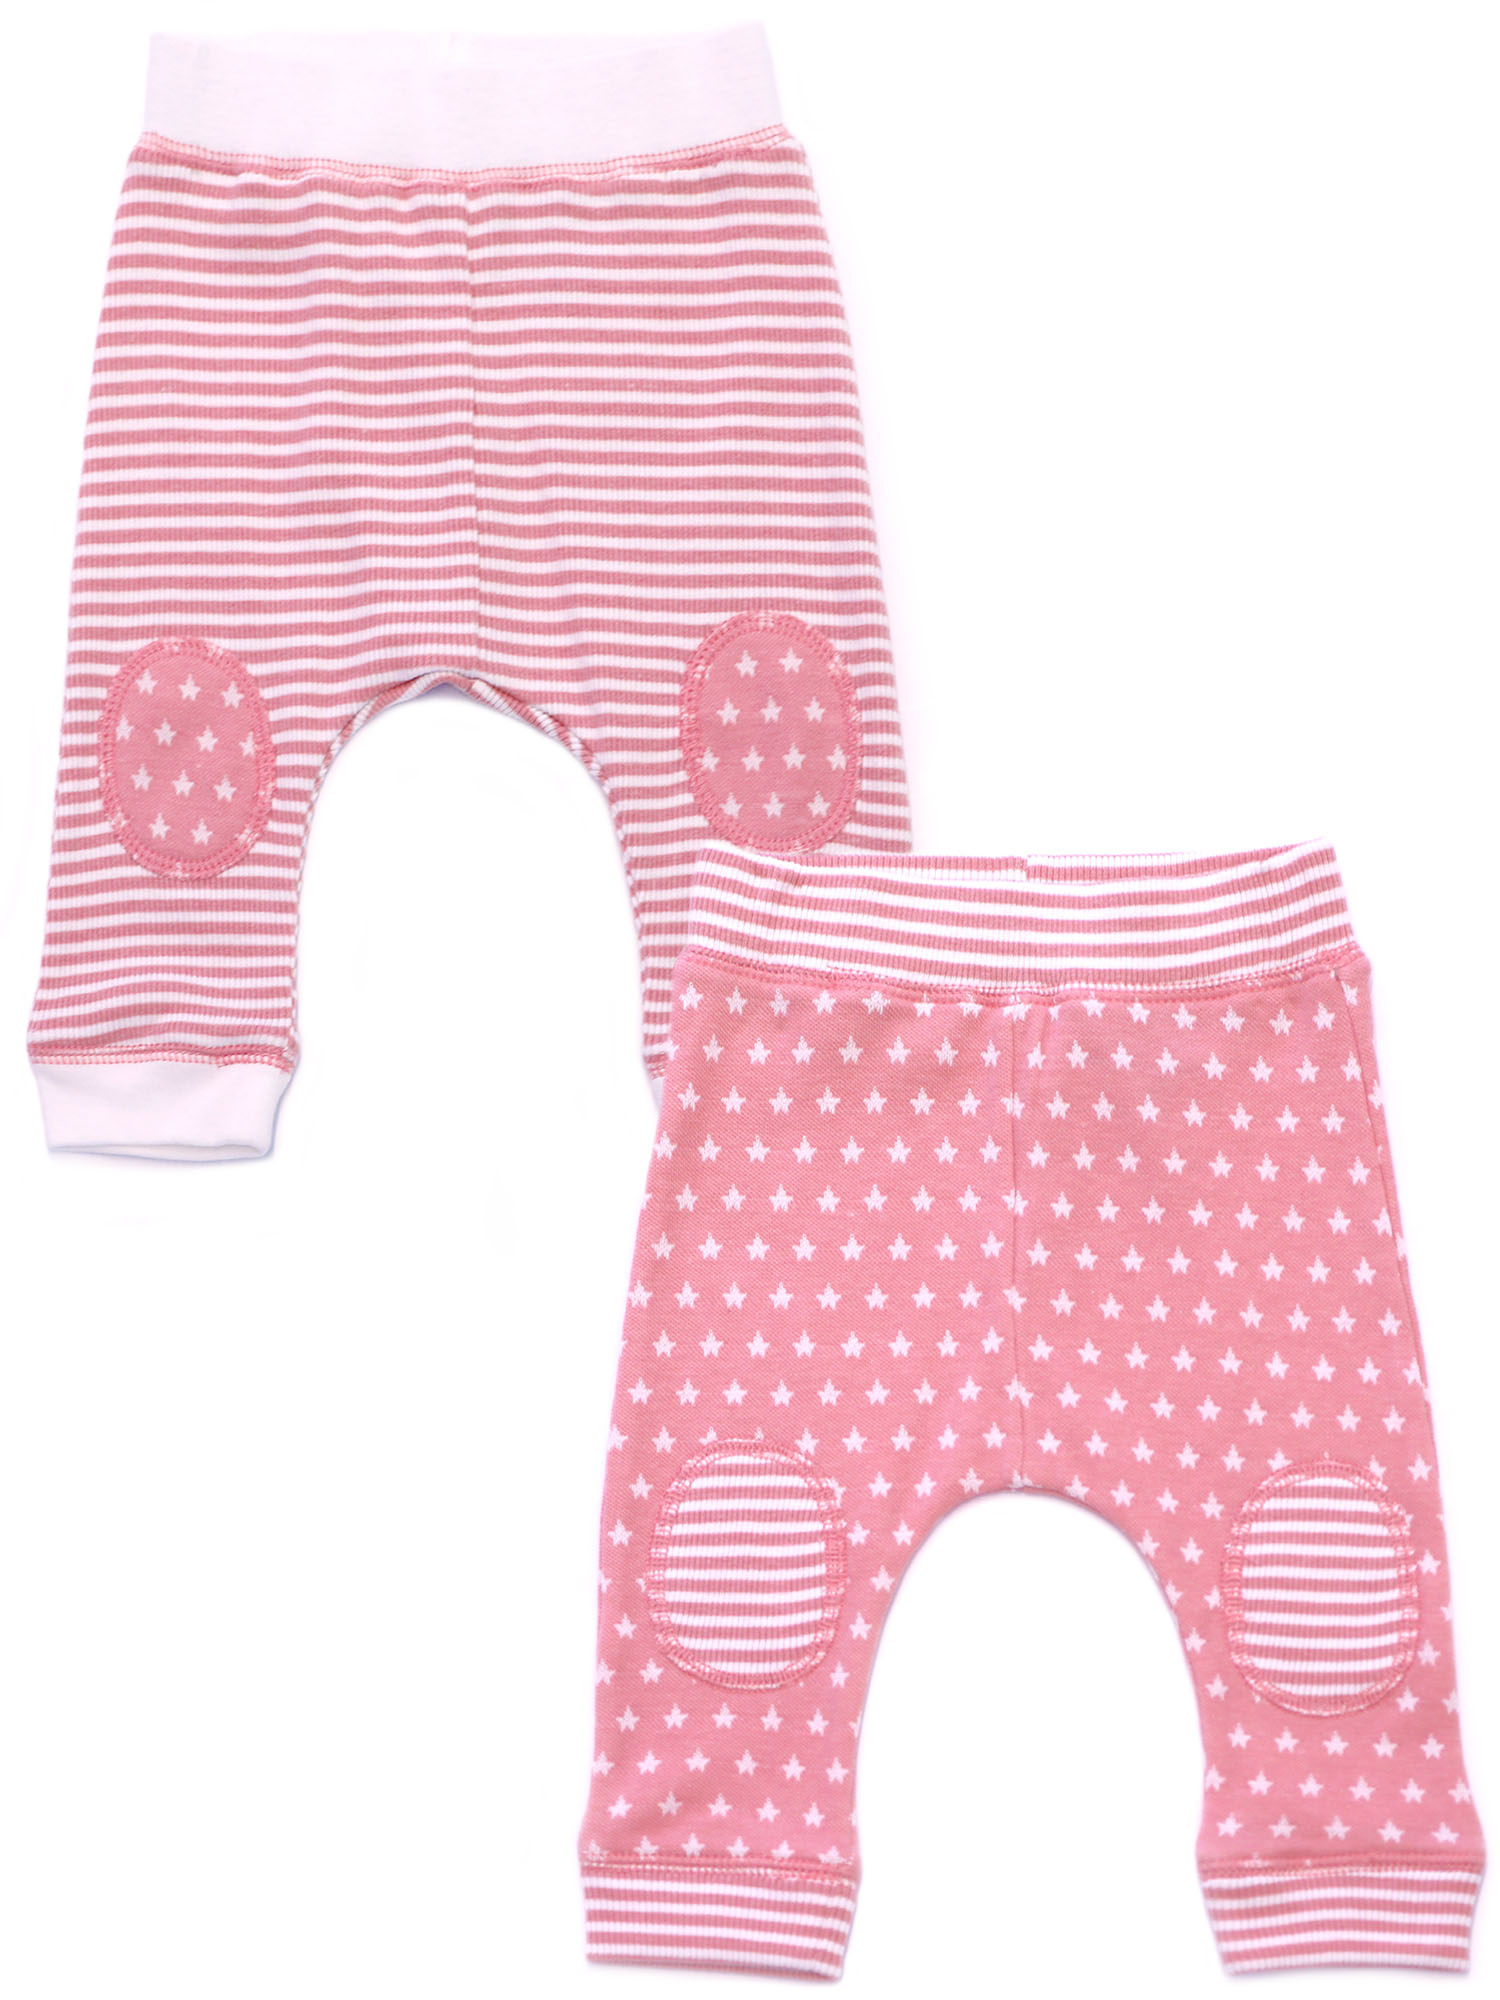 Kapital K Harem Jogger Pants, 2-pack (Baby Girls)